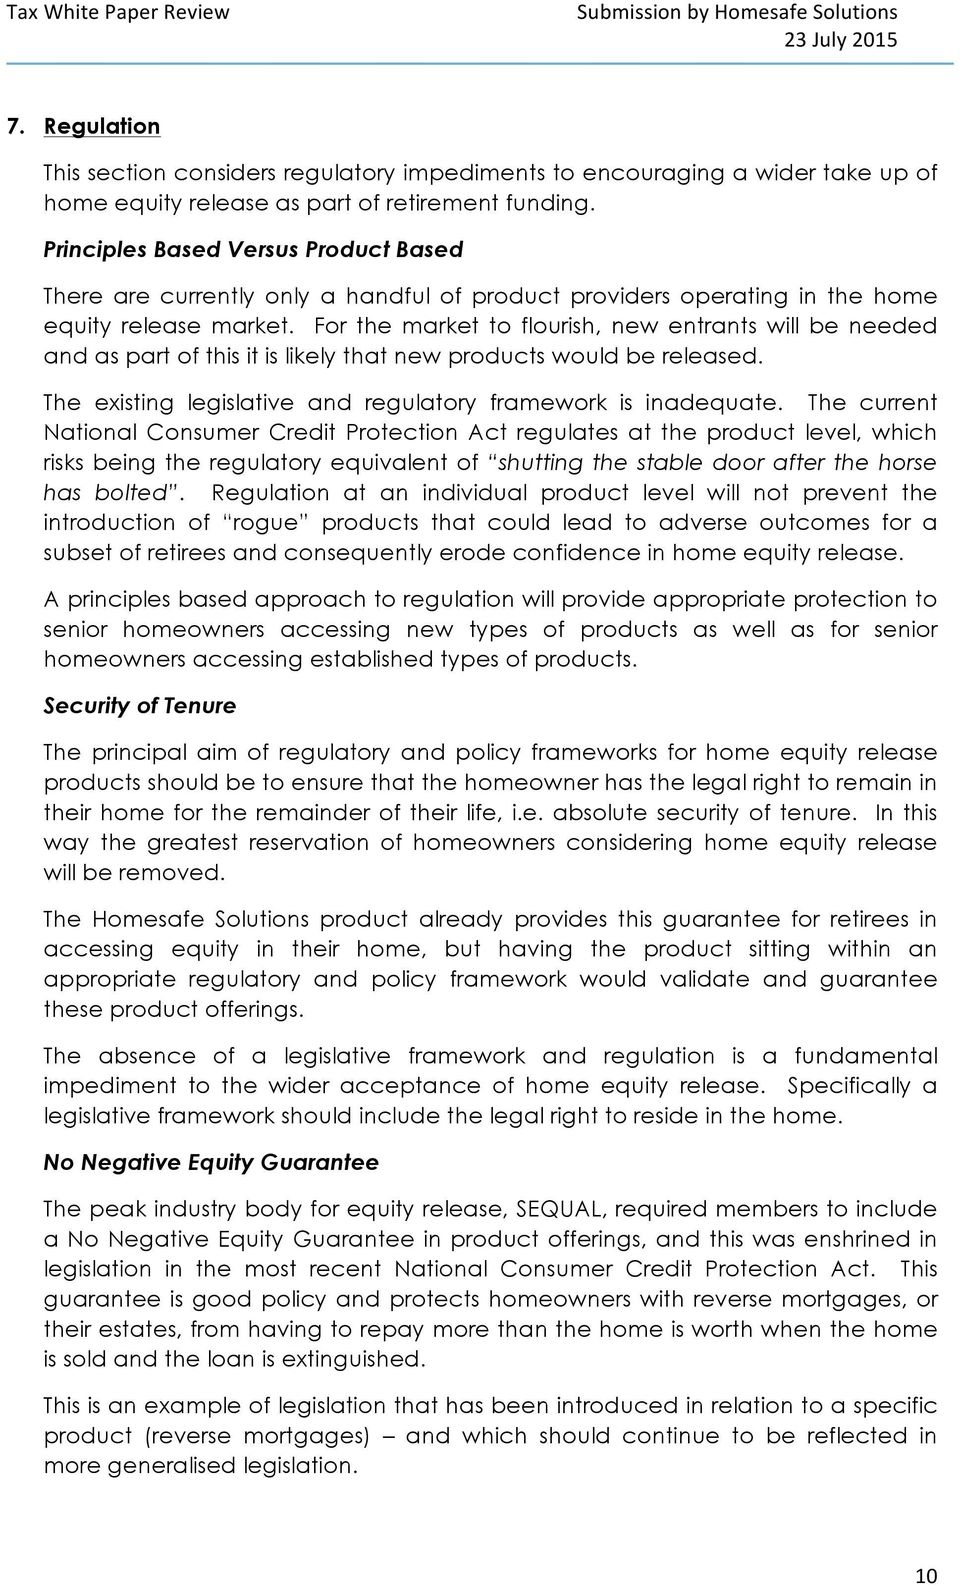 For the market to flourish, new entrants will be needed and as part of this it is likely that new products would be released. The existing legislative and regulatory framework is inadequate.